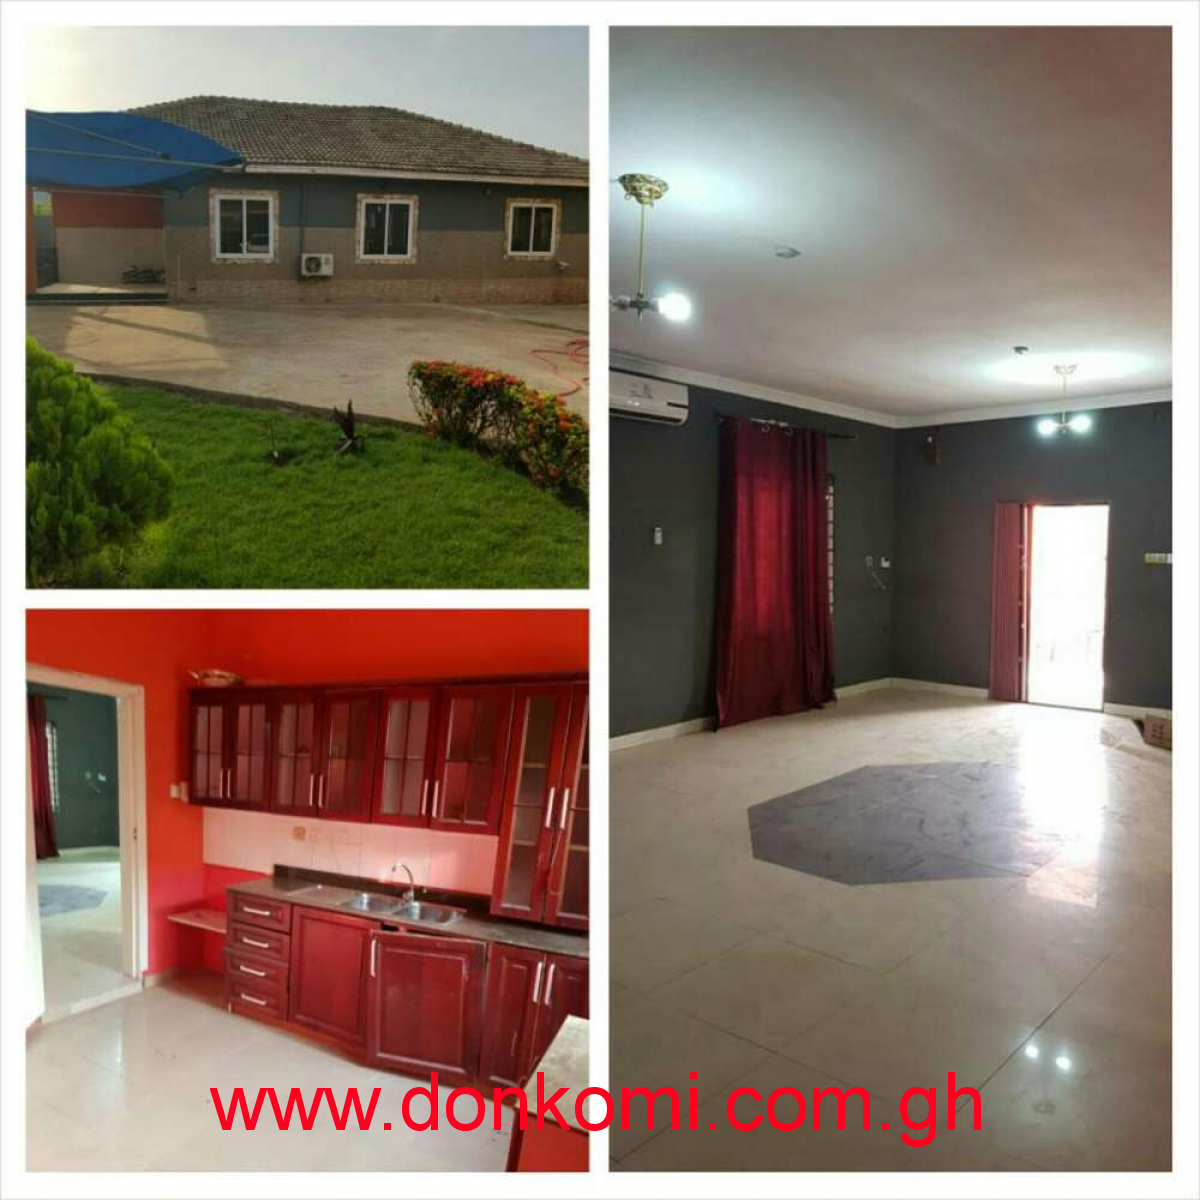 3 Bedrooms apartment for Rent at west Trassaco